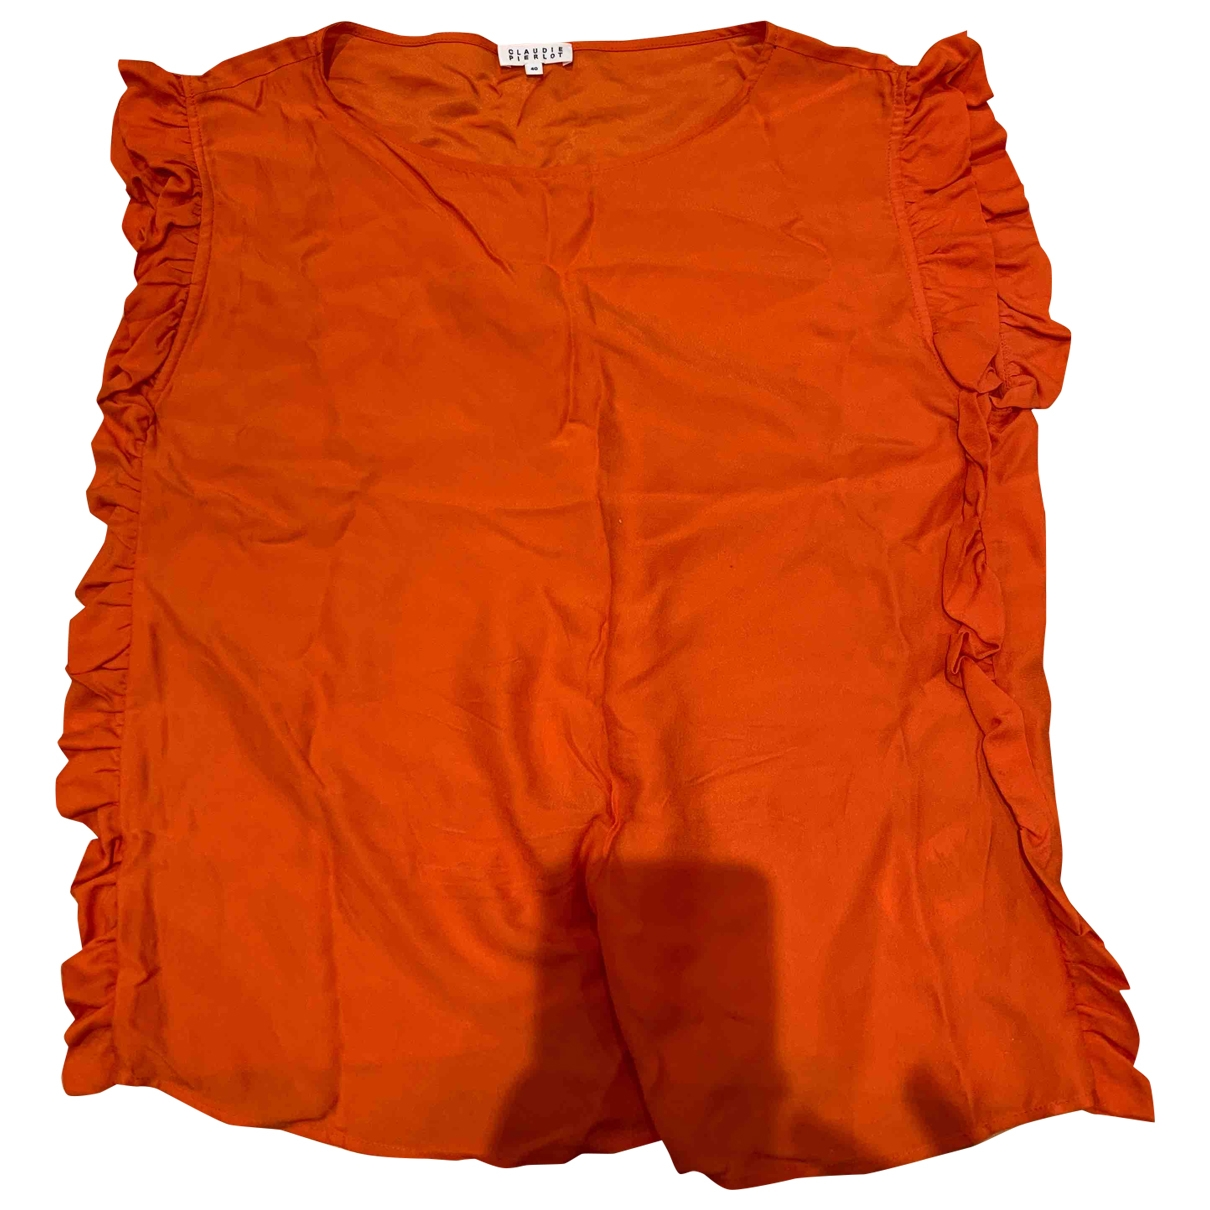 Claudie Pierlot - Top   pour femme - orange